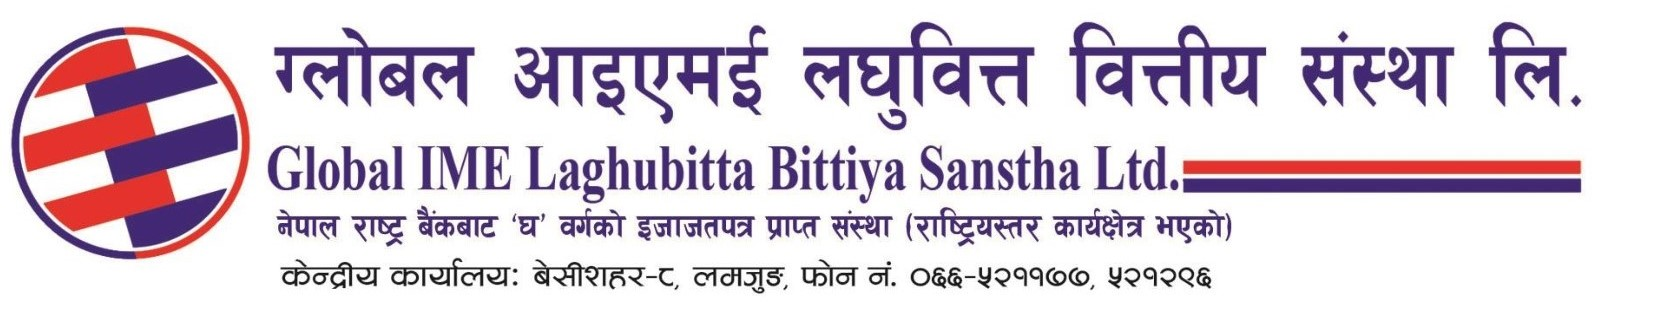 Global IME Laghubitta Bittiya Sanstha Ltd.